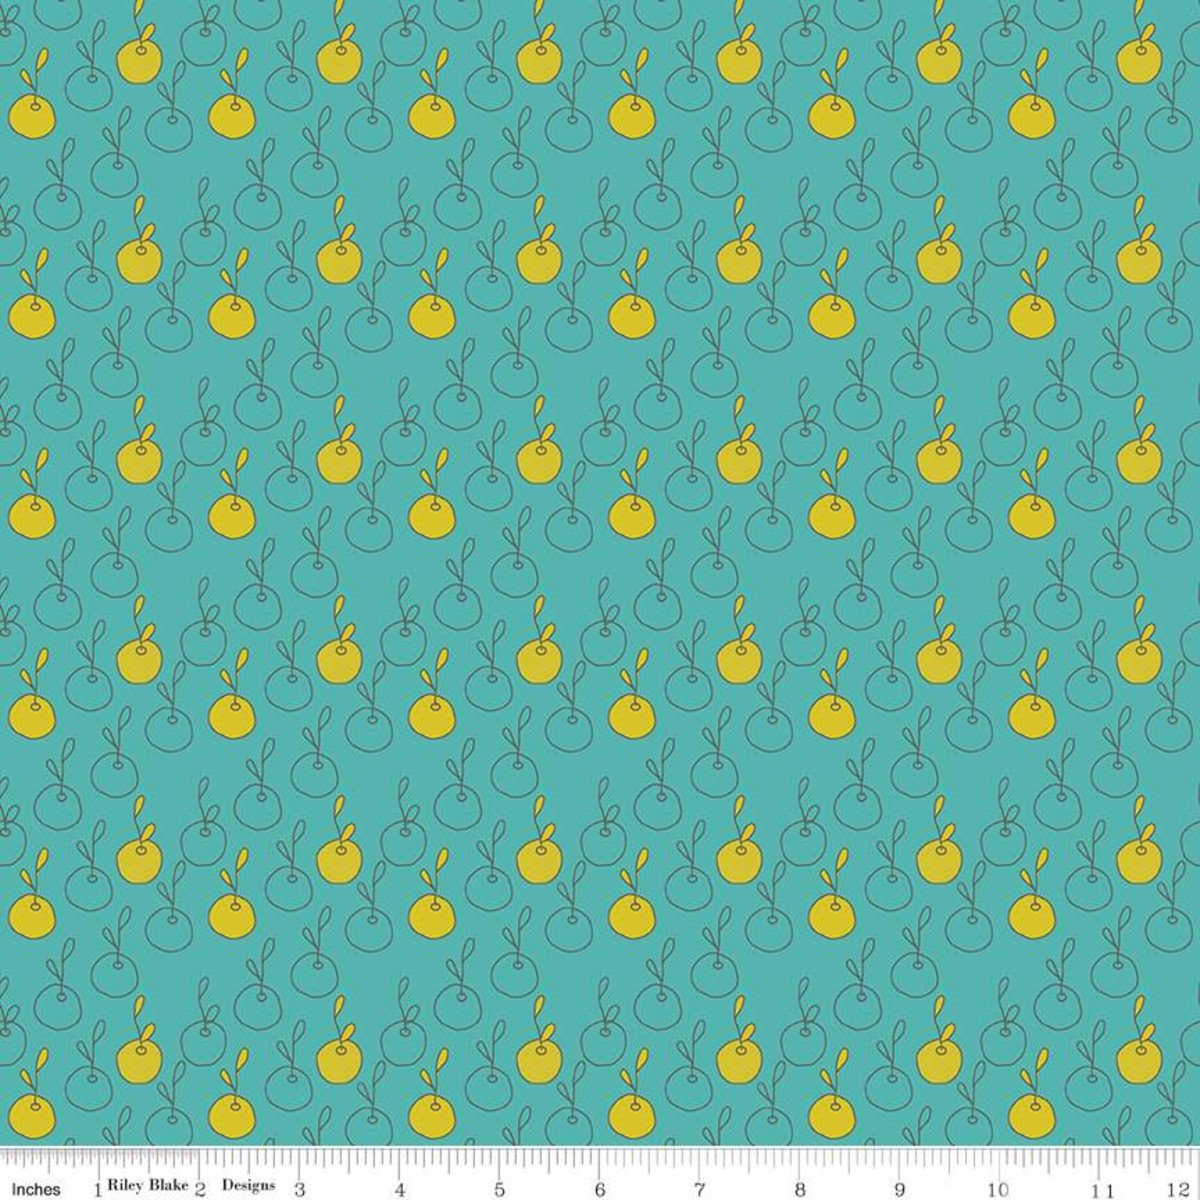 ON THE BRIGHT SIDE C9435 TEAL